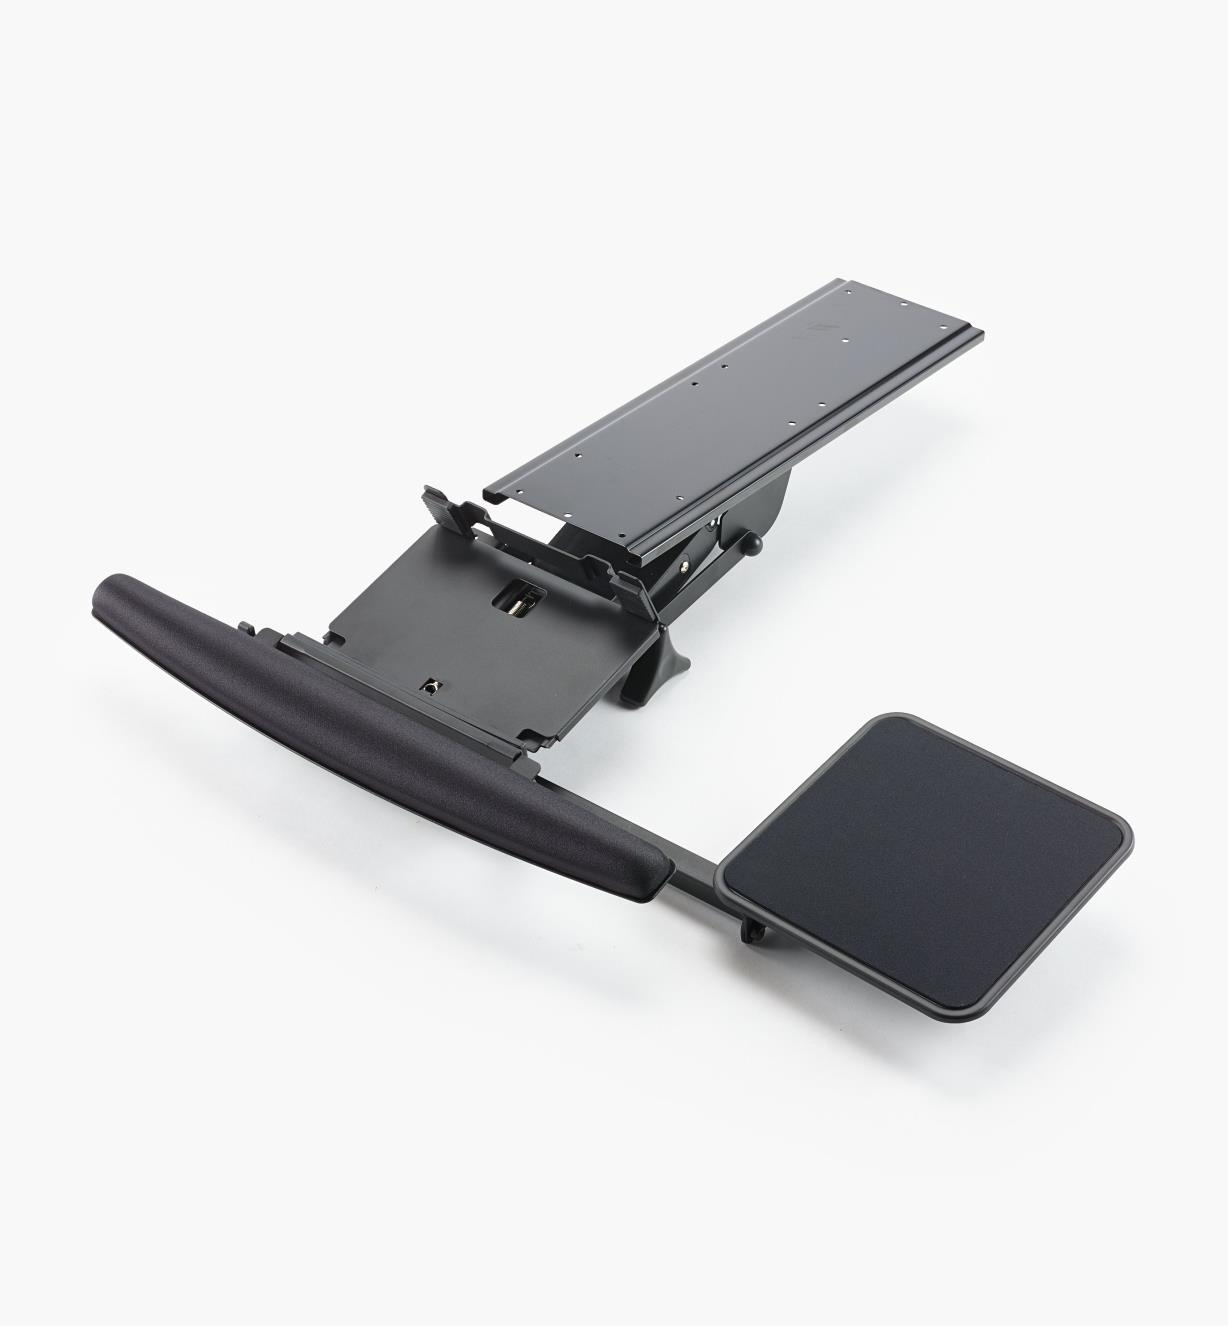 12K8730 - Teflon Glide with Wrist Rest & Mouse Pad